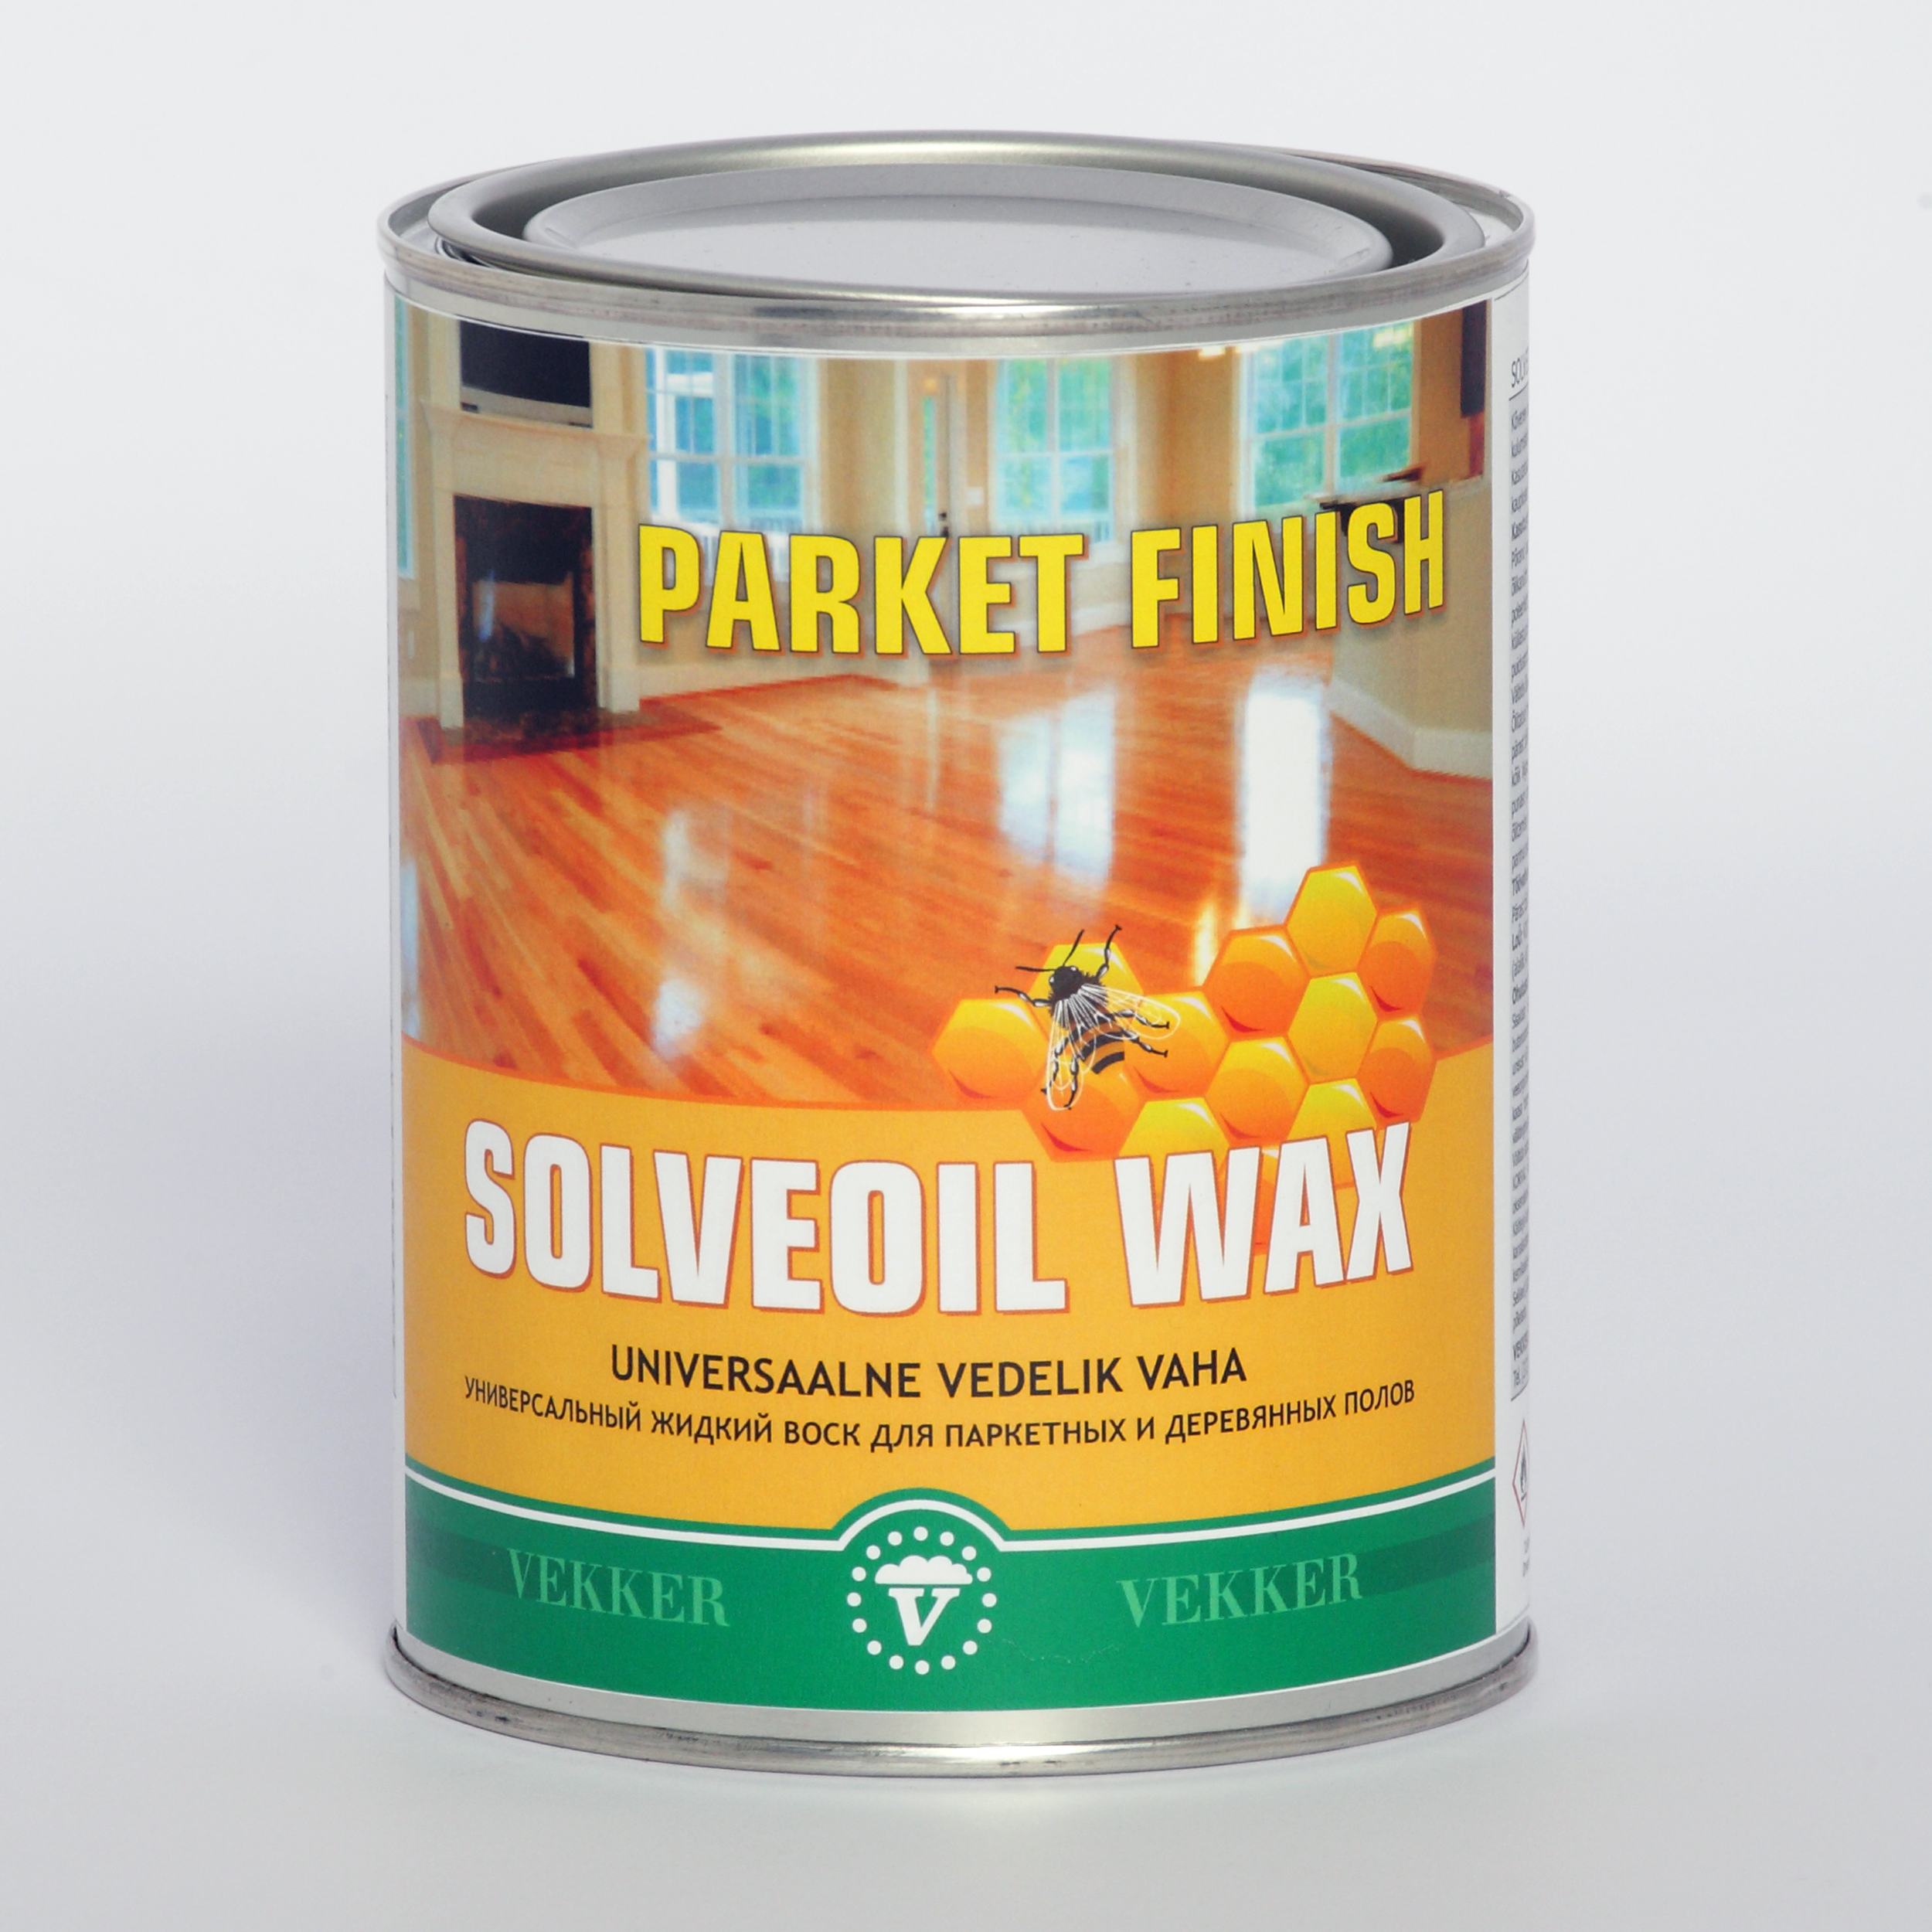 Solveoil Wax Parket Finish